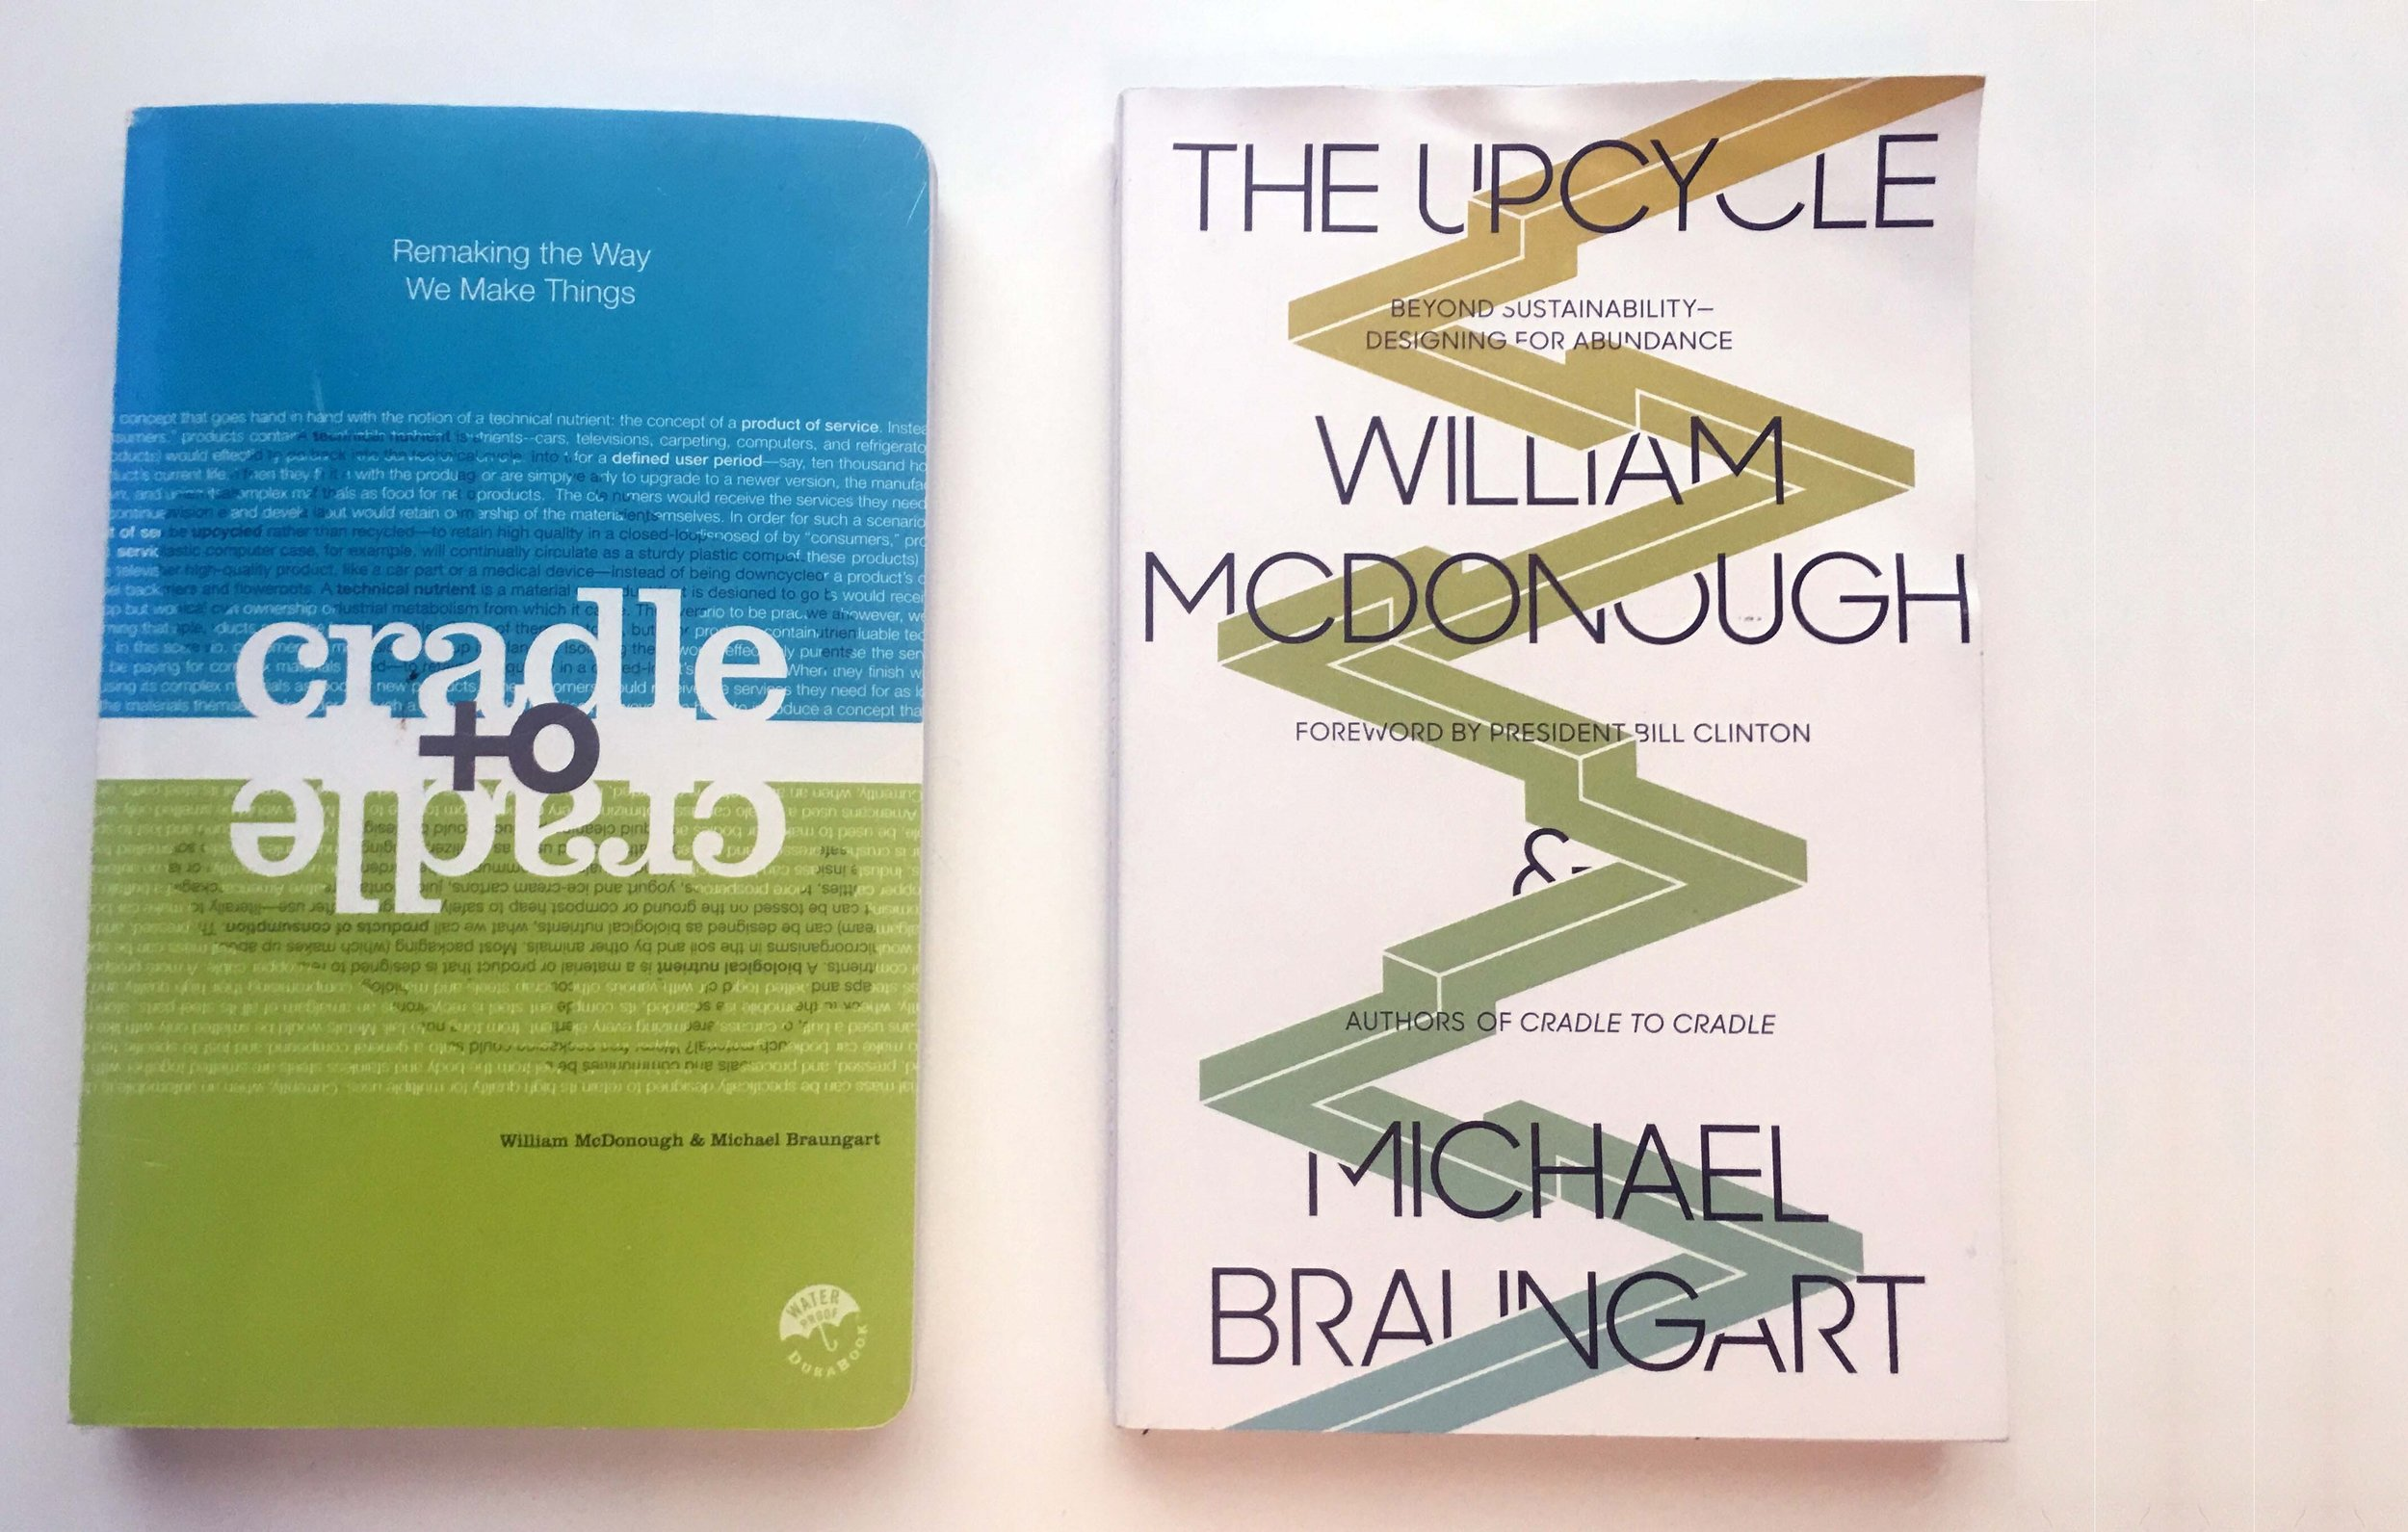 Something to leaf through... - Read more from two of the top leaders in thought on Sustainability. FUN FACT - The books themselves are technical nutrients,printed with Melcher Media's DuraBook technology. They are waterproof, very durable, and recyclable.Cradle to Cradle: Remaking the Way we Make Things (2002) by Michael Braungart and William McDonough. Available on Amazon.The Upcycle: Beyond Sustainability -- Designing for Abundance (2013)by Michael Braungart and William McDonough. Available on Amazon.